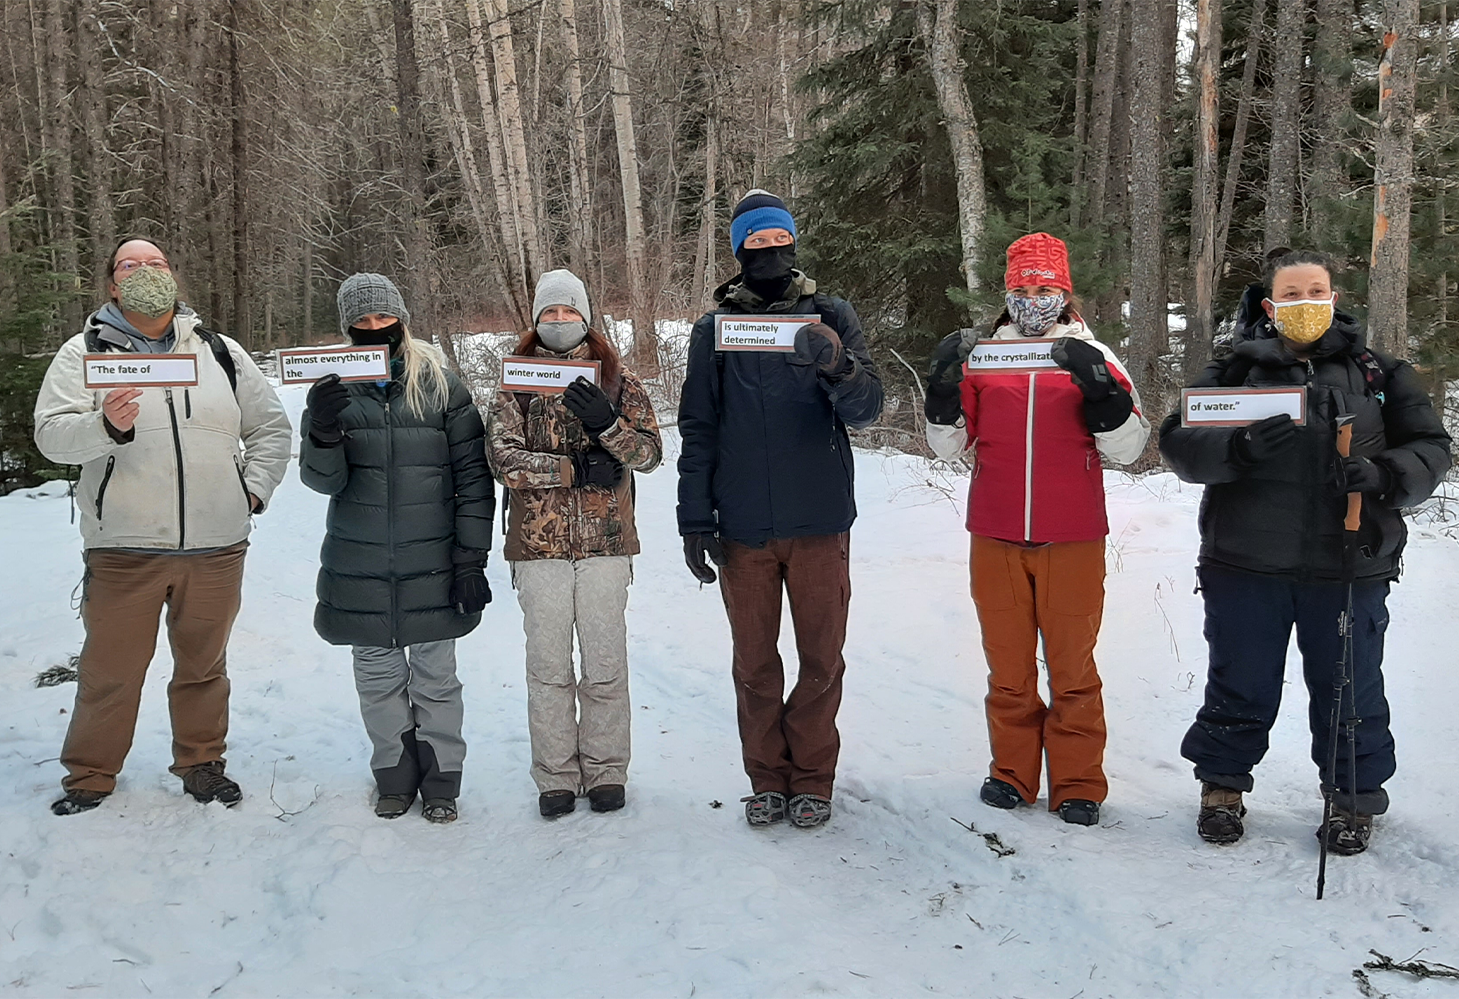 A group of teachers perform an activity outside during the winter session of the workshop Flathead Watershed Through The Seasons